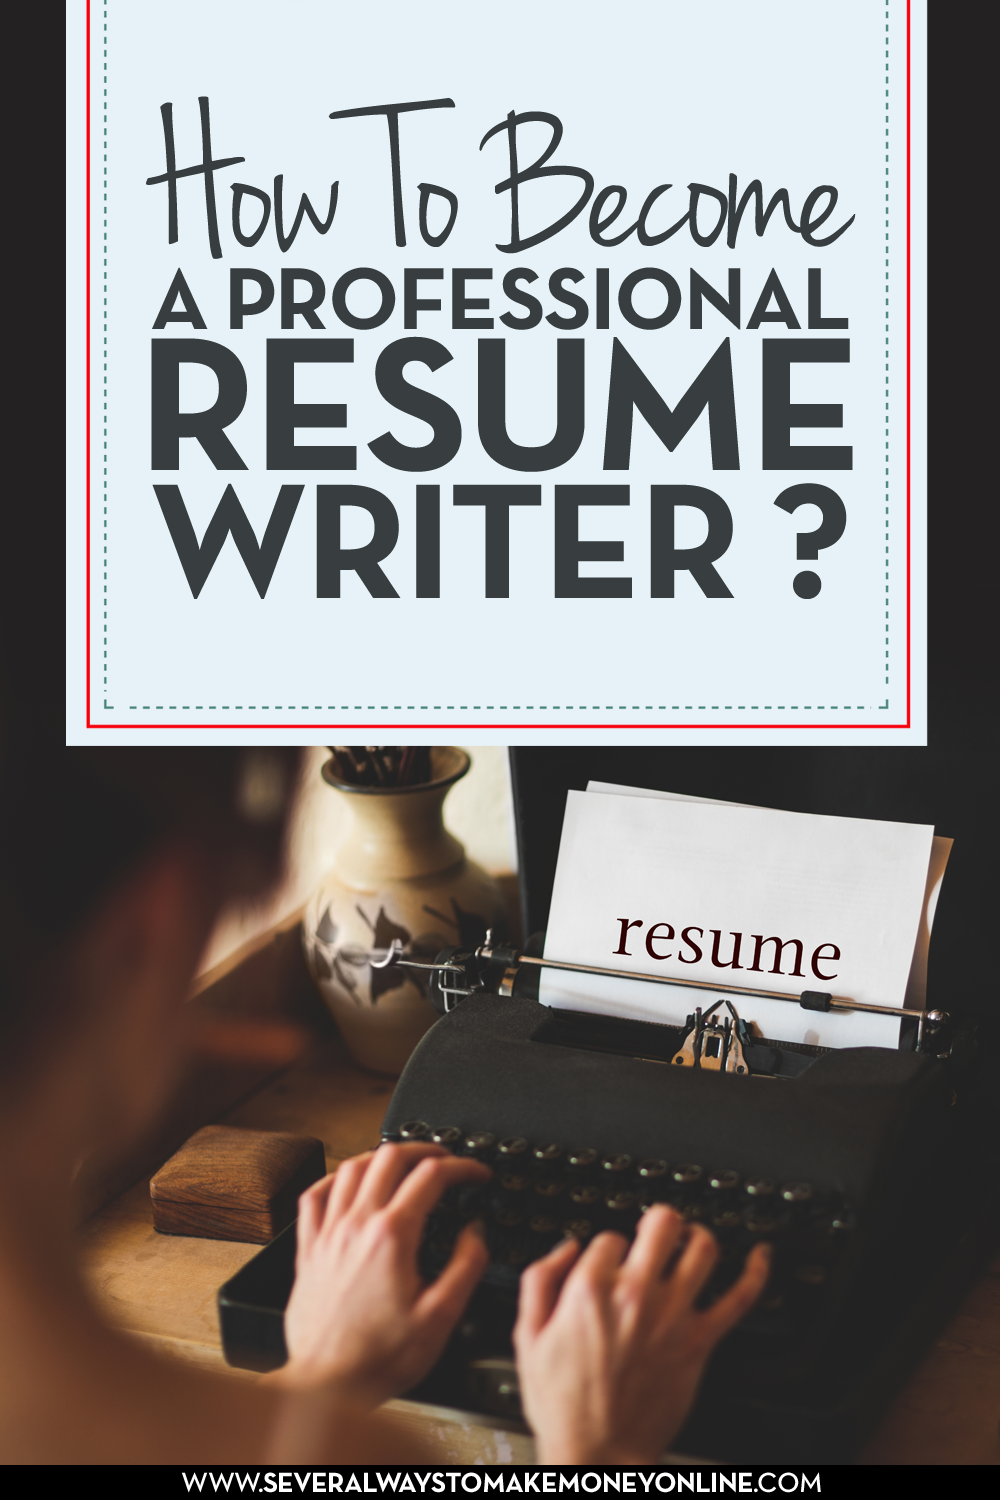 Learn how to become a professional resume writer. Resume writing ...